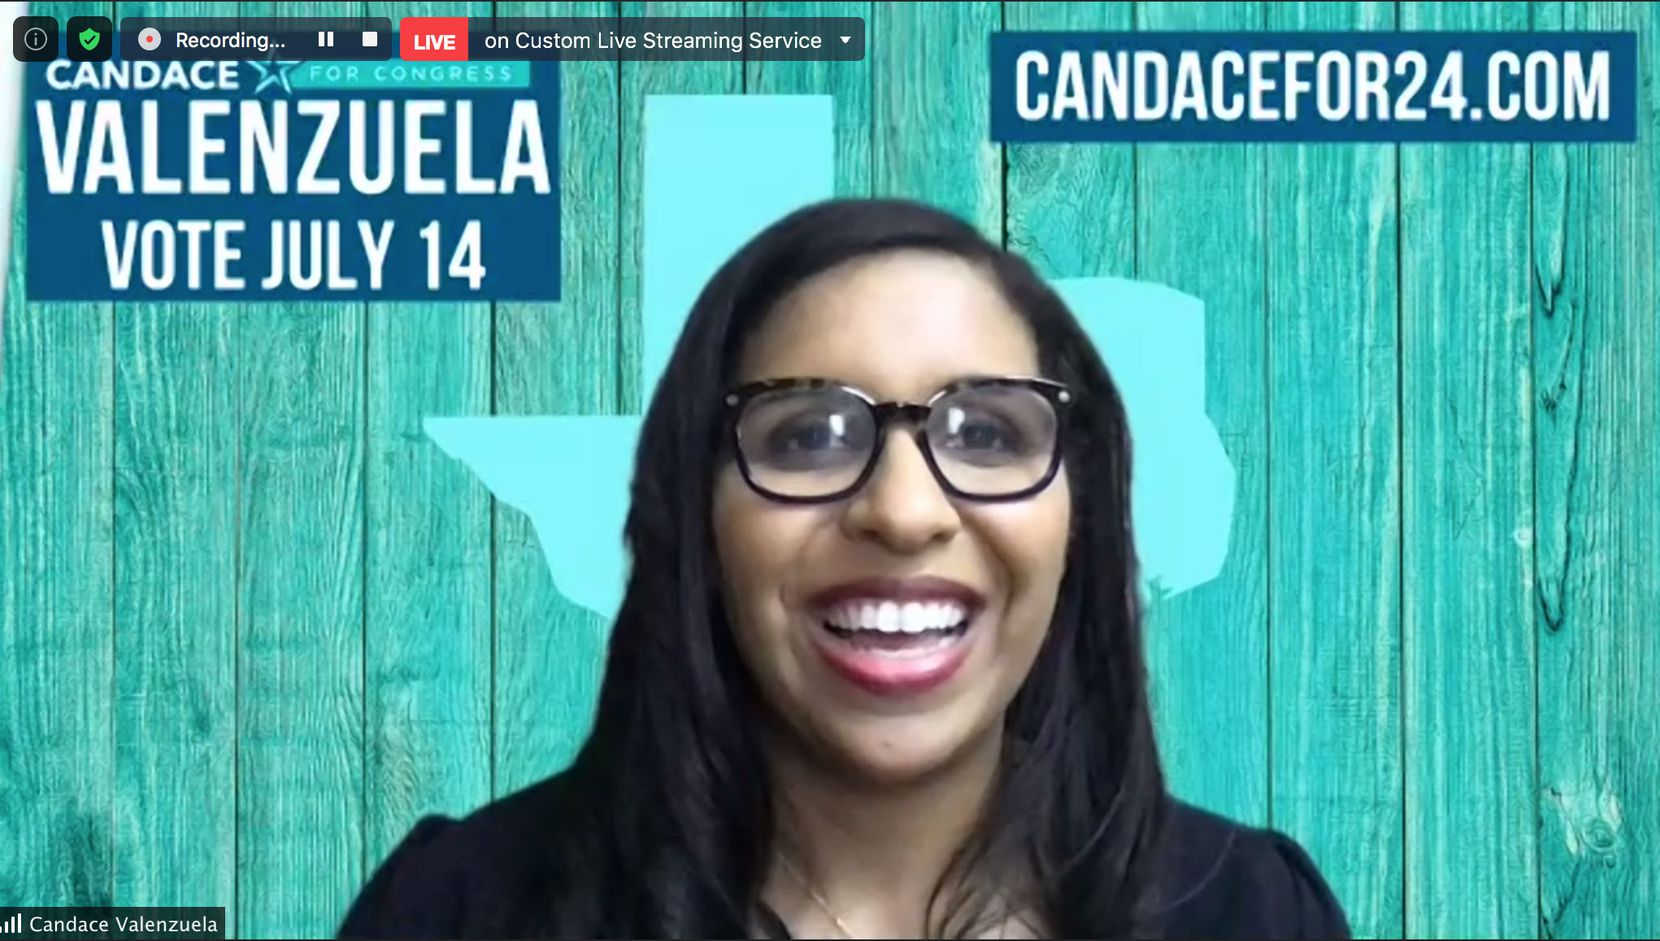 Candace Valenzuela declares victory and thanks her supporters, after defeating Kim Olson in the 2020 Democratic primary runoff election. The two were fighting to face Republican candidate Beth Van Duyne in the fight to fill Texas' 24th Congressional District seat being vacated by retiring U.S. Rep. Kenny Marchant, R-Coppell. The seat is a national Democratic target after Marchant won reelection two years ago by a surprisingly small margin.